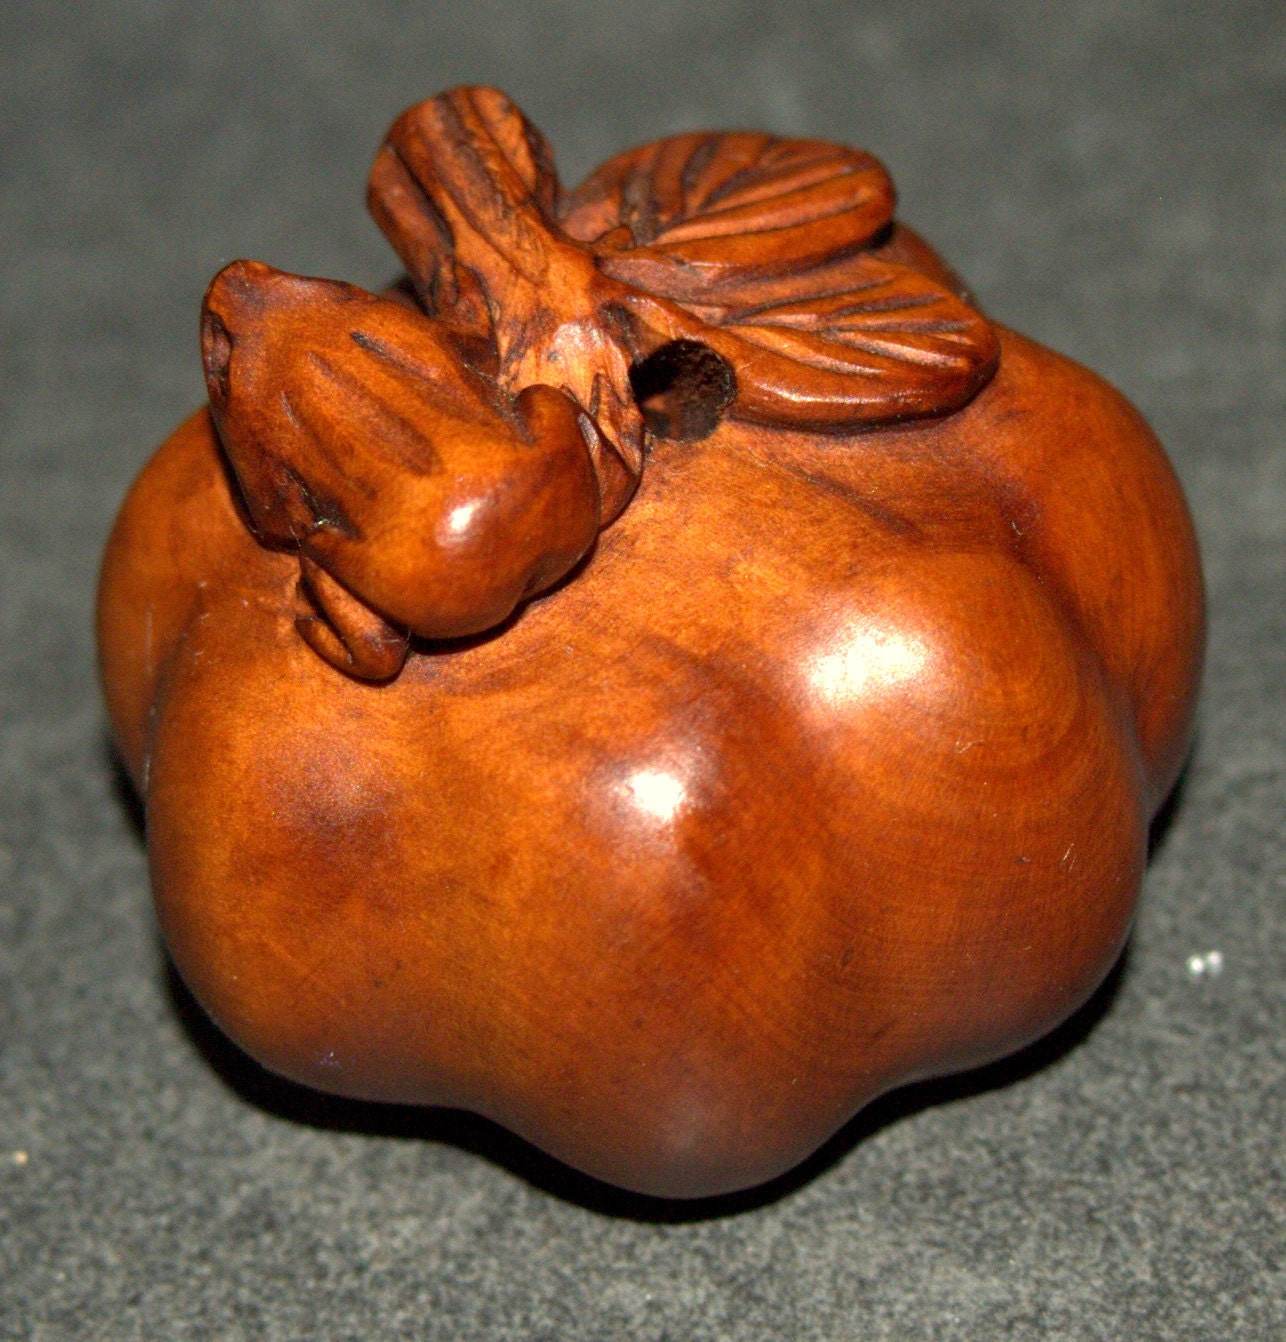 Netsuke hand carved wood figurine frog on a pumpkin signed